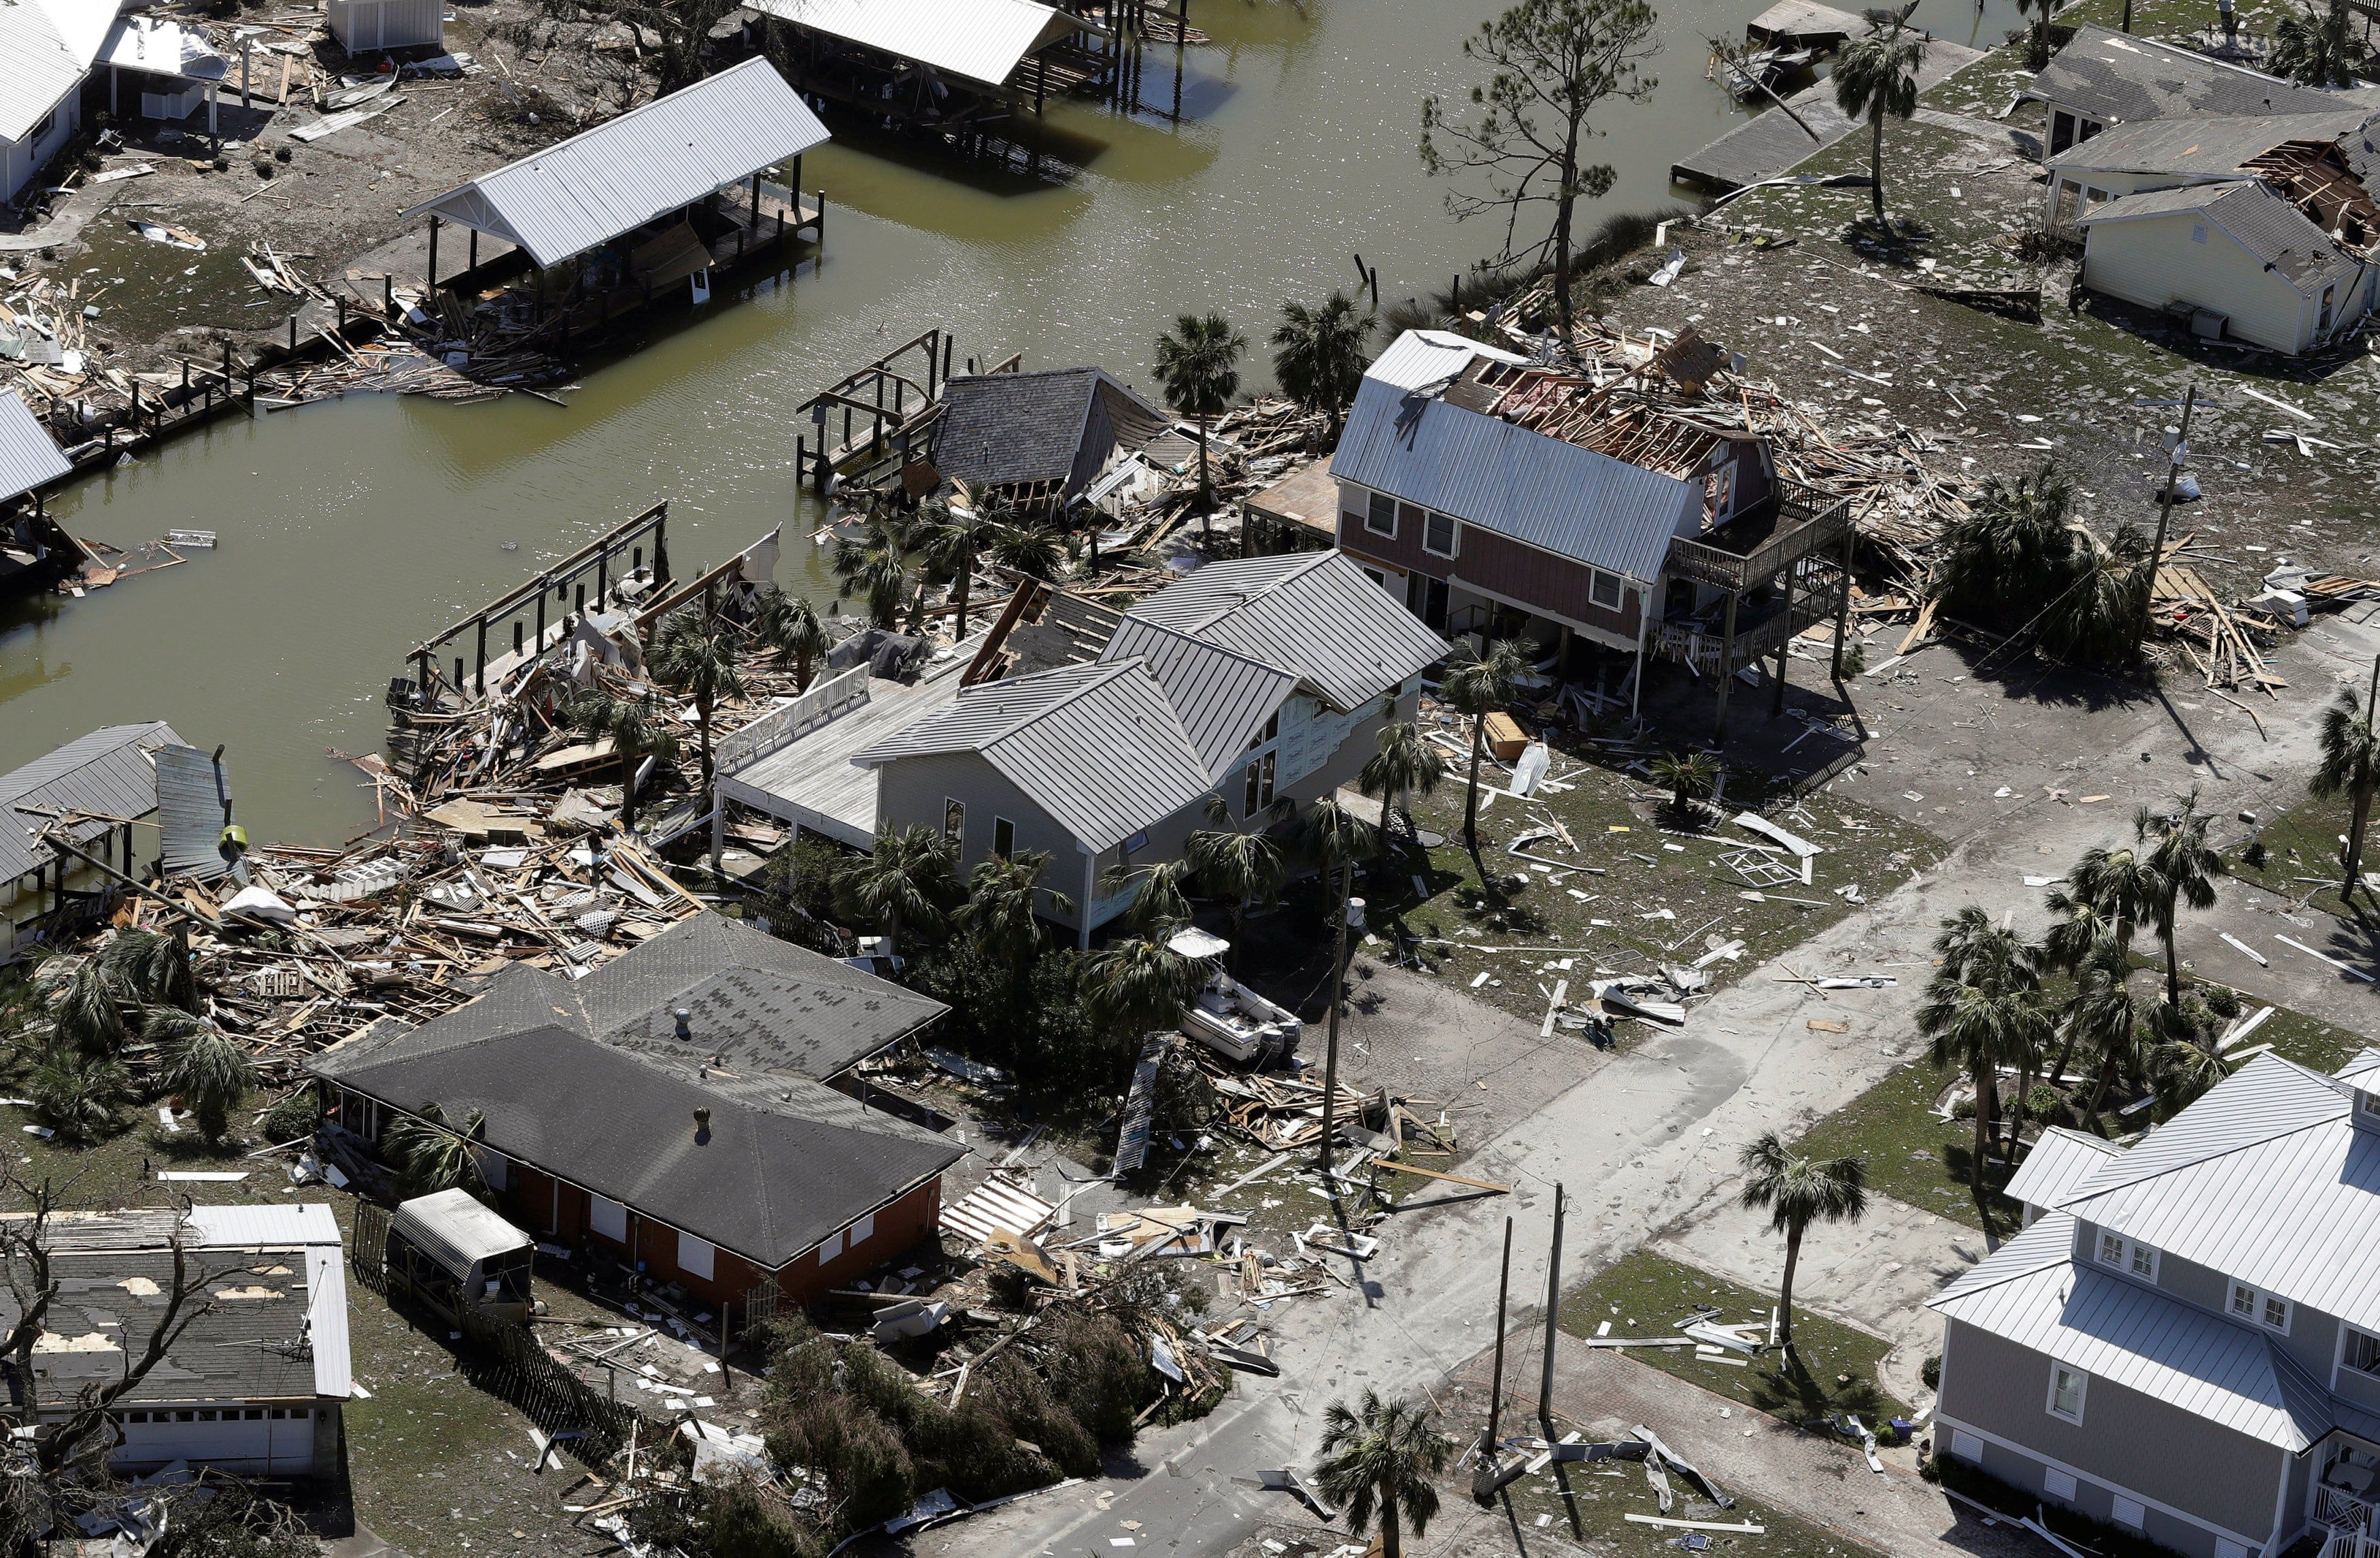 Hurricane Michael Leaves Trail Of Devastation Through Florida In Pictures Disaster Relief Devastation Panama City Panama